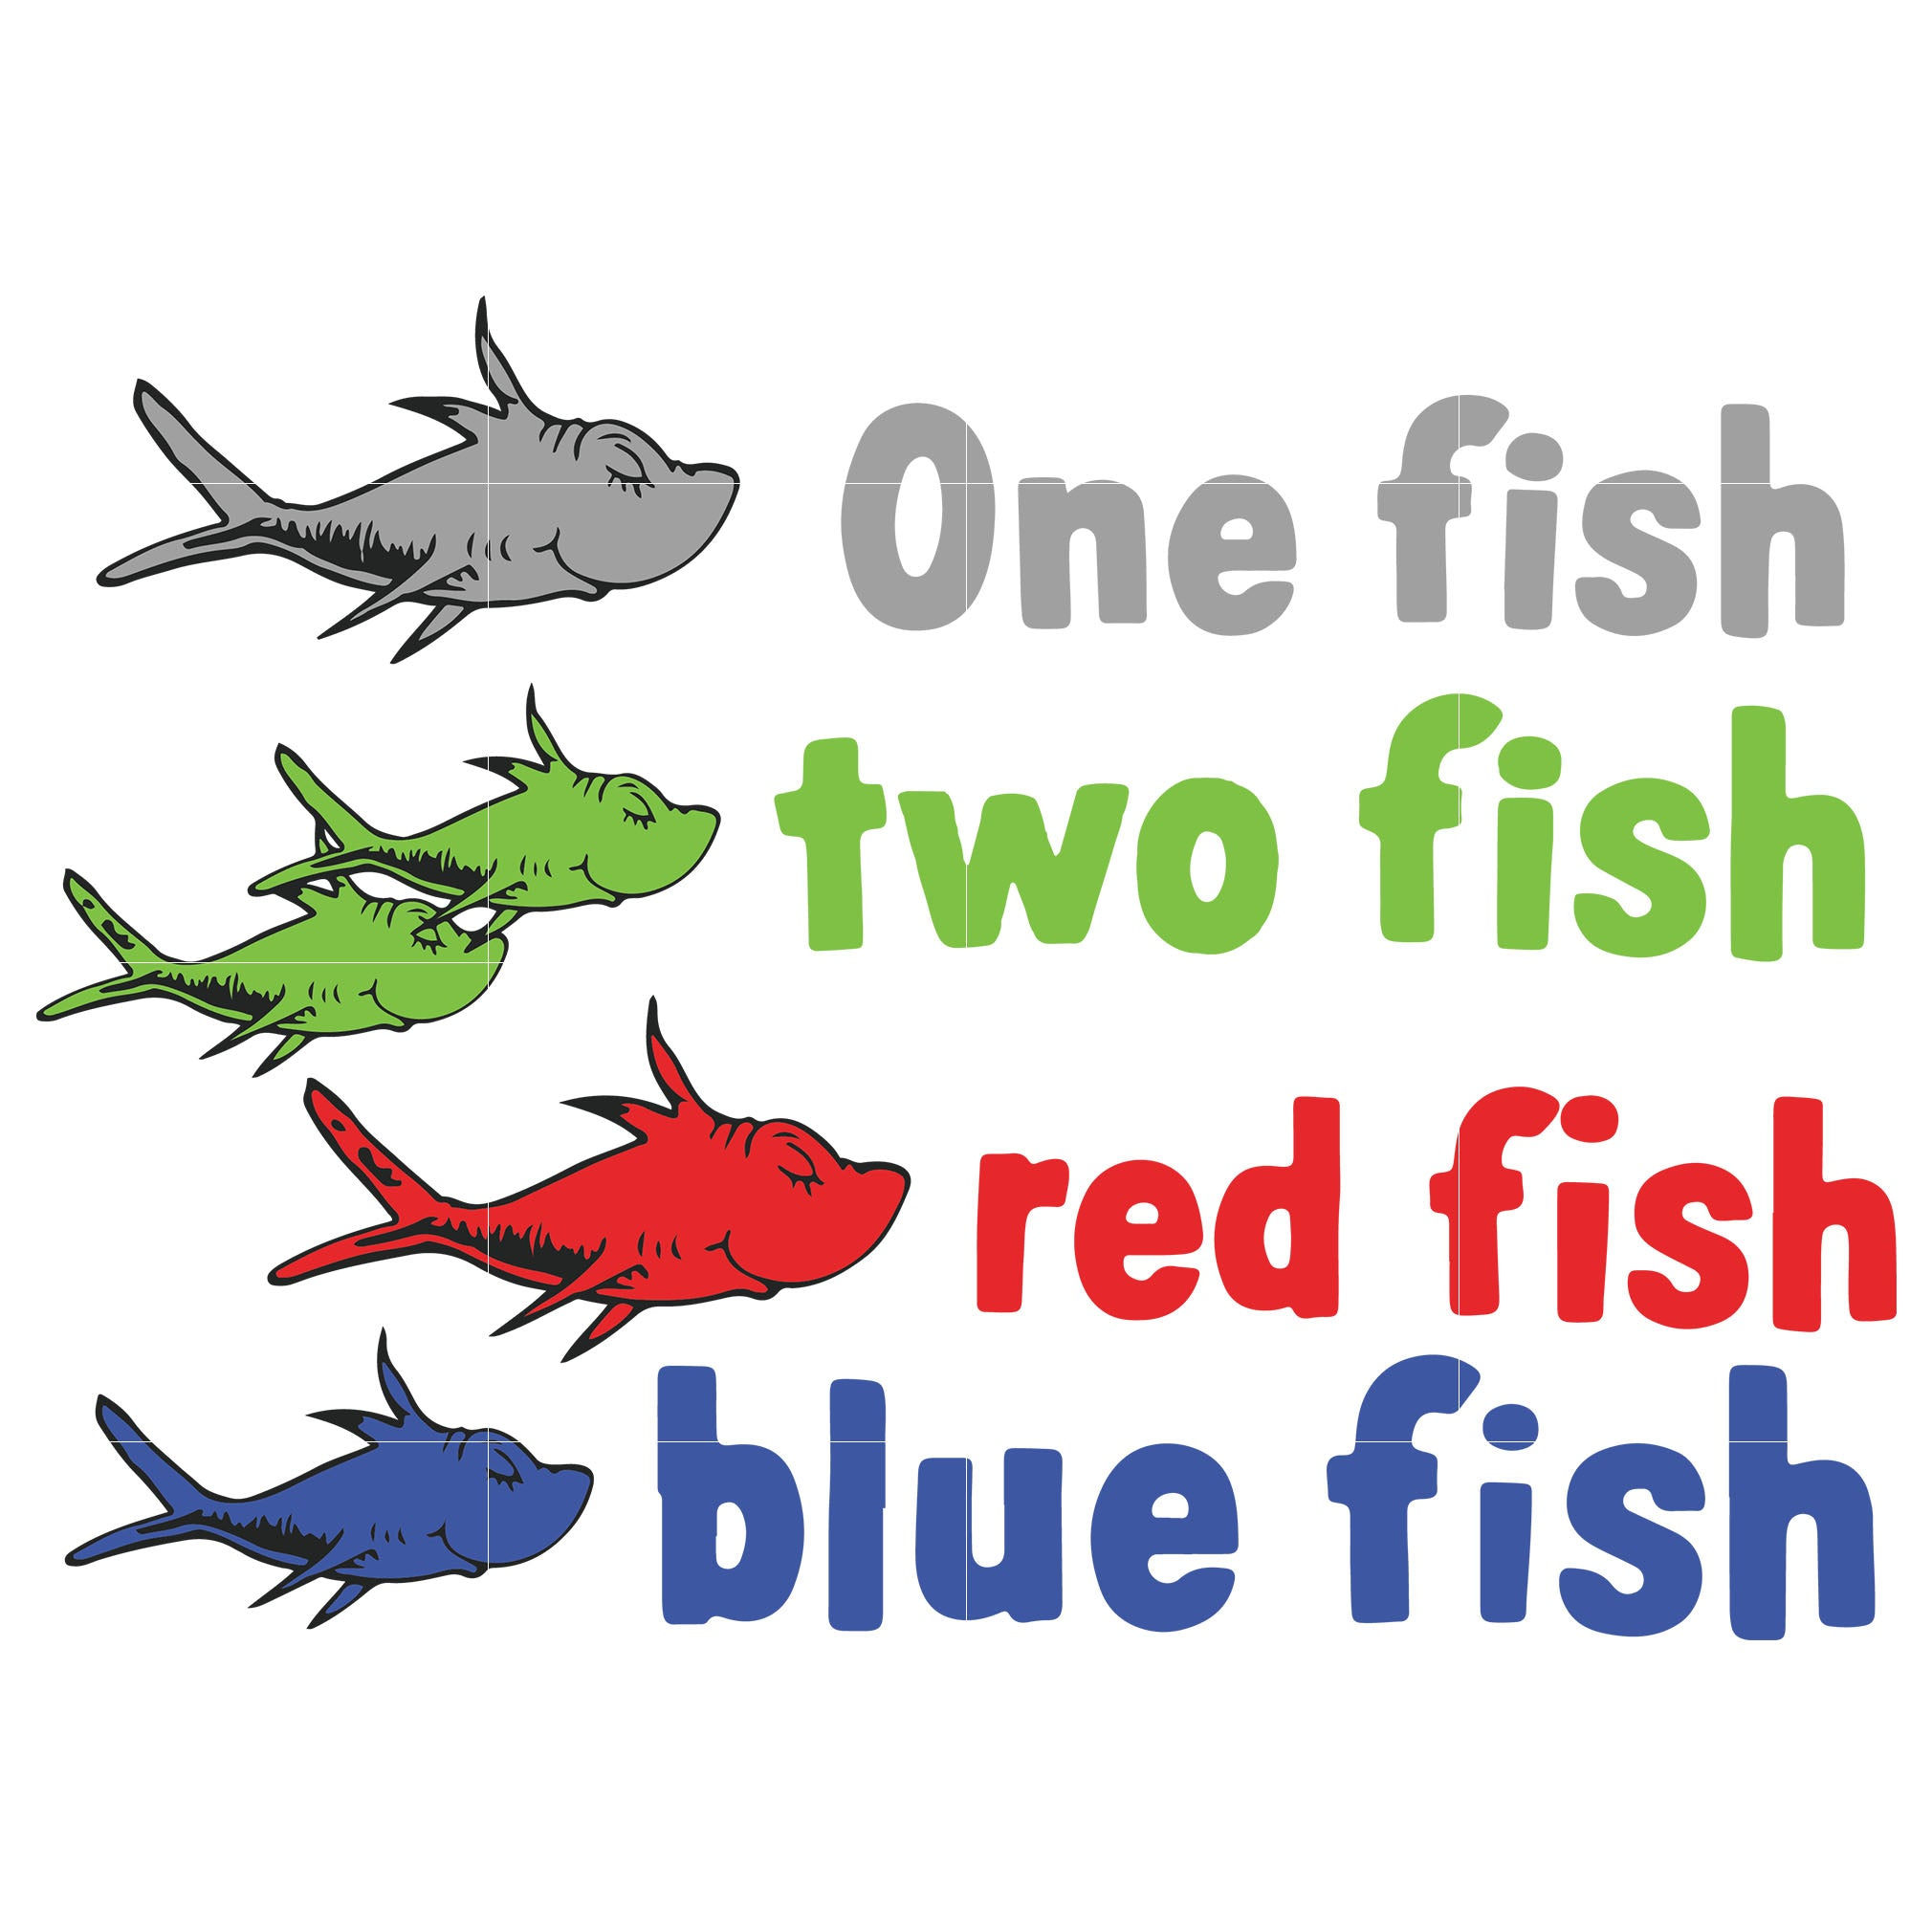 One fish two fish red fish blue fish, dr seuss svg, dr seuss quotes, digital file